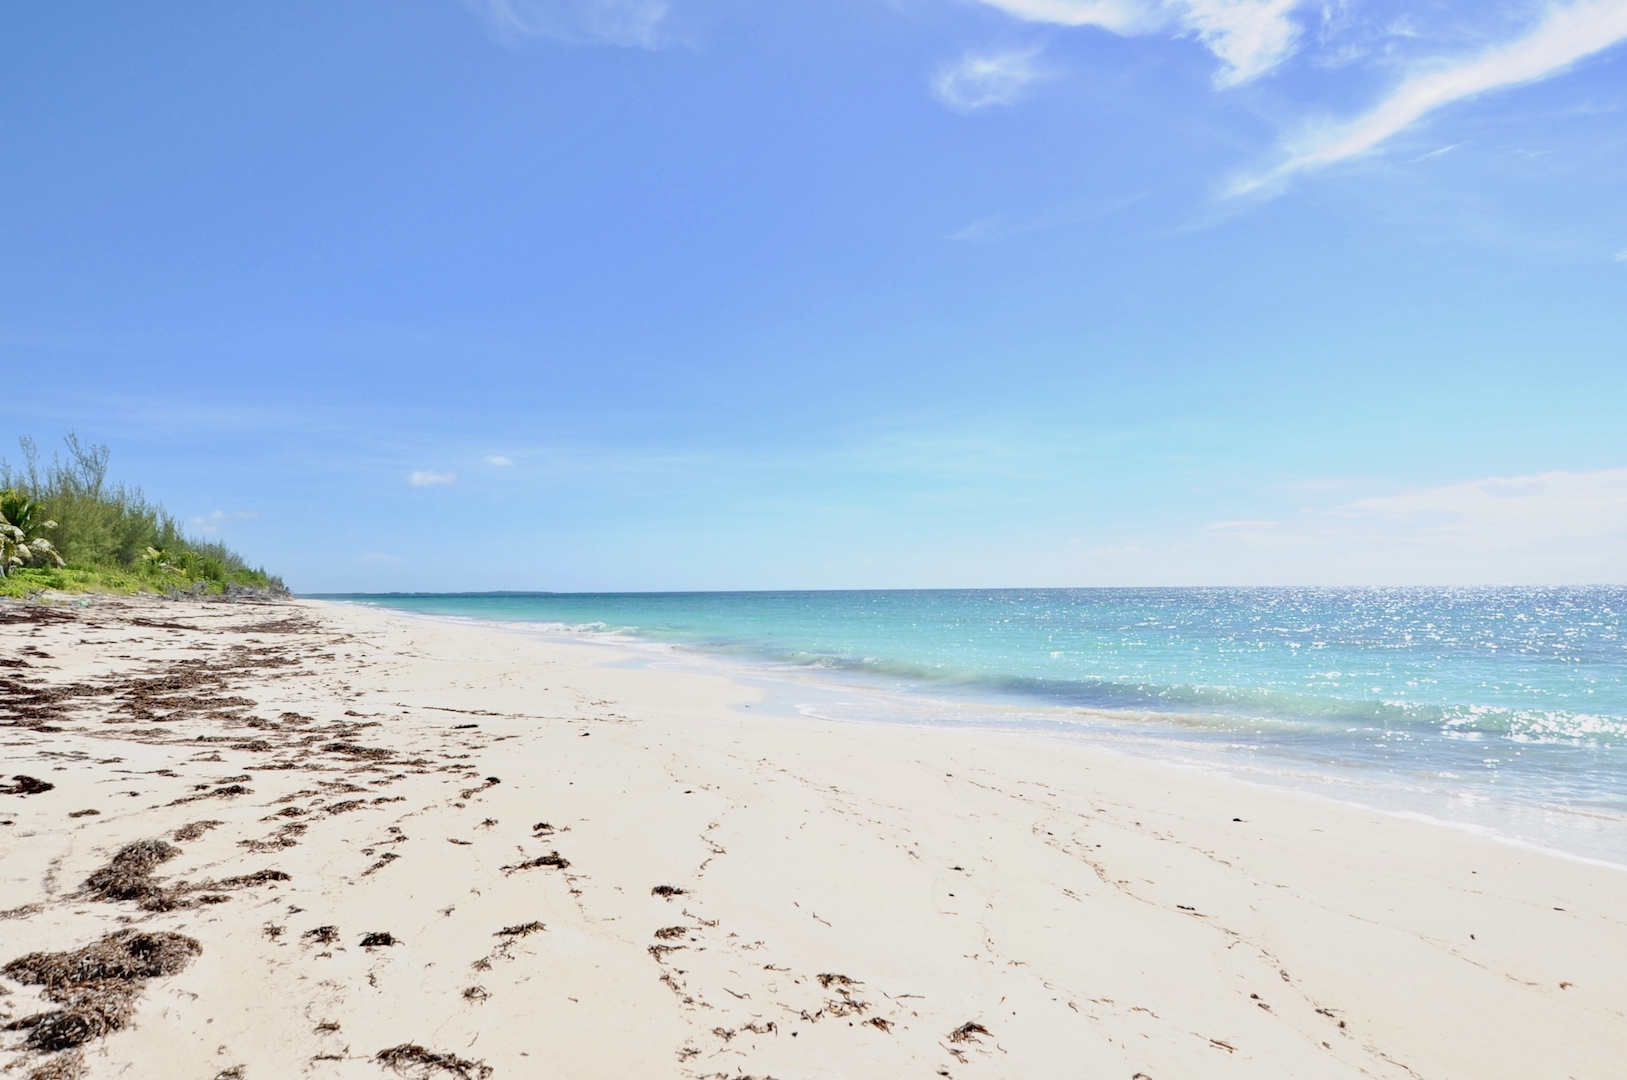 Lot for sale in Bahama Palm Shores just 5 minutes from the 8 mile beach